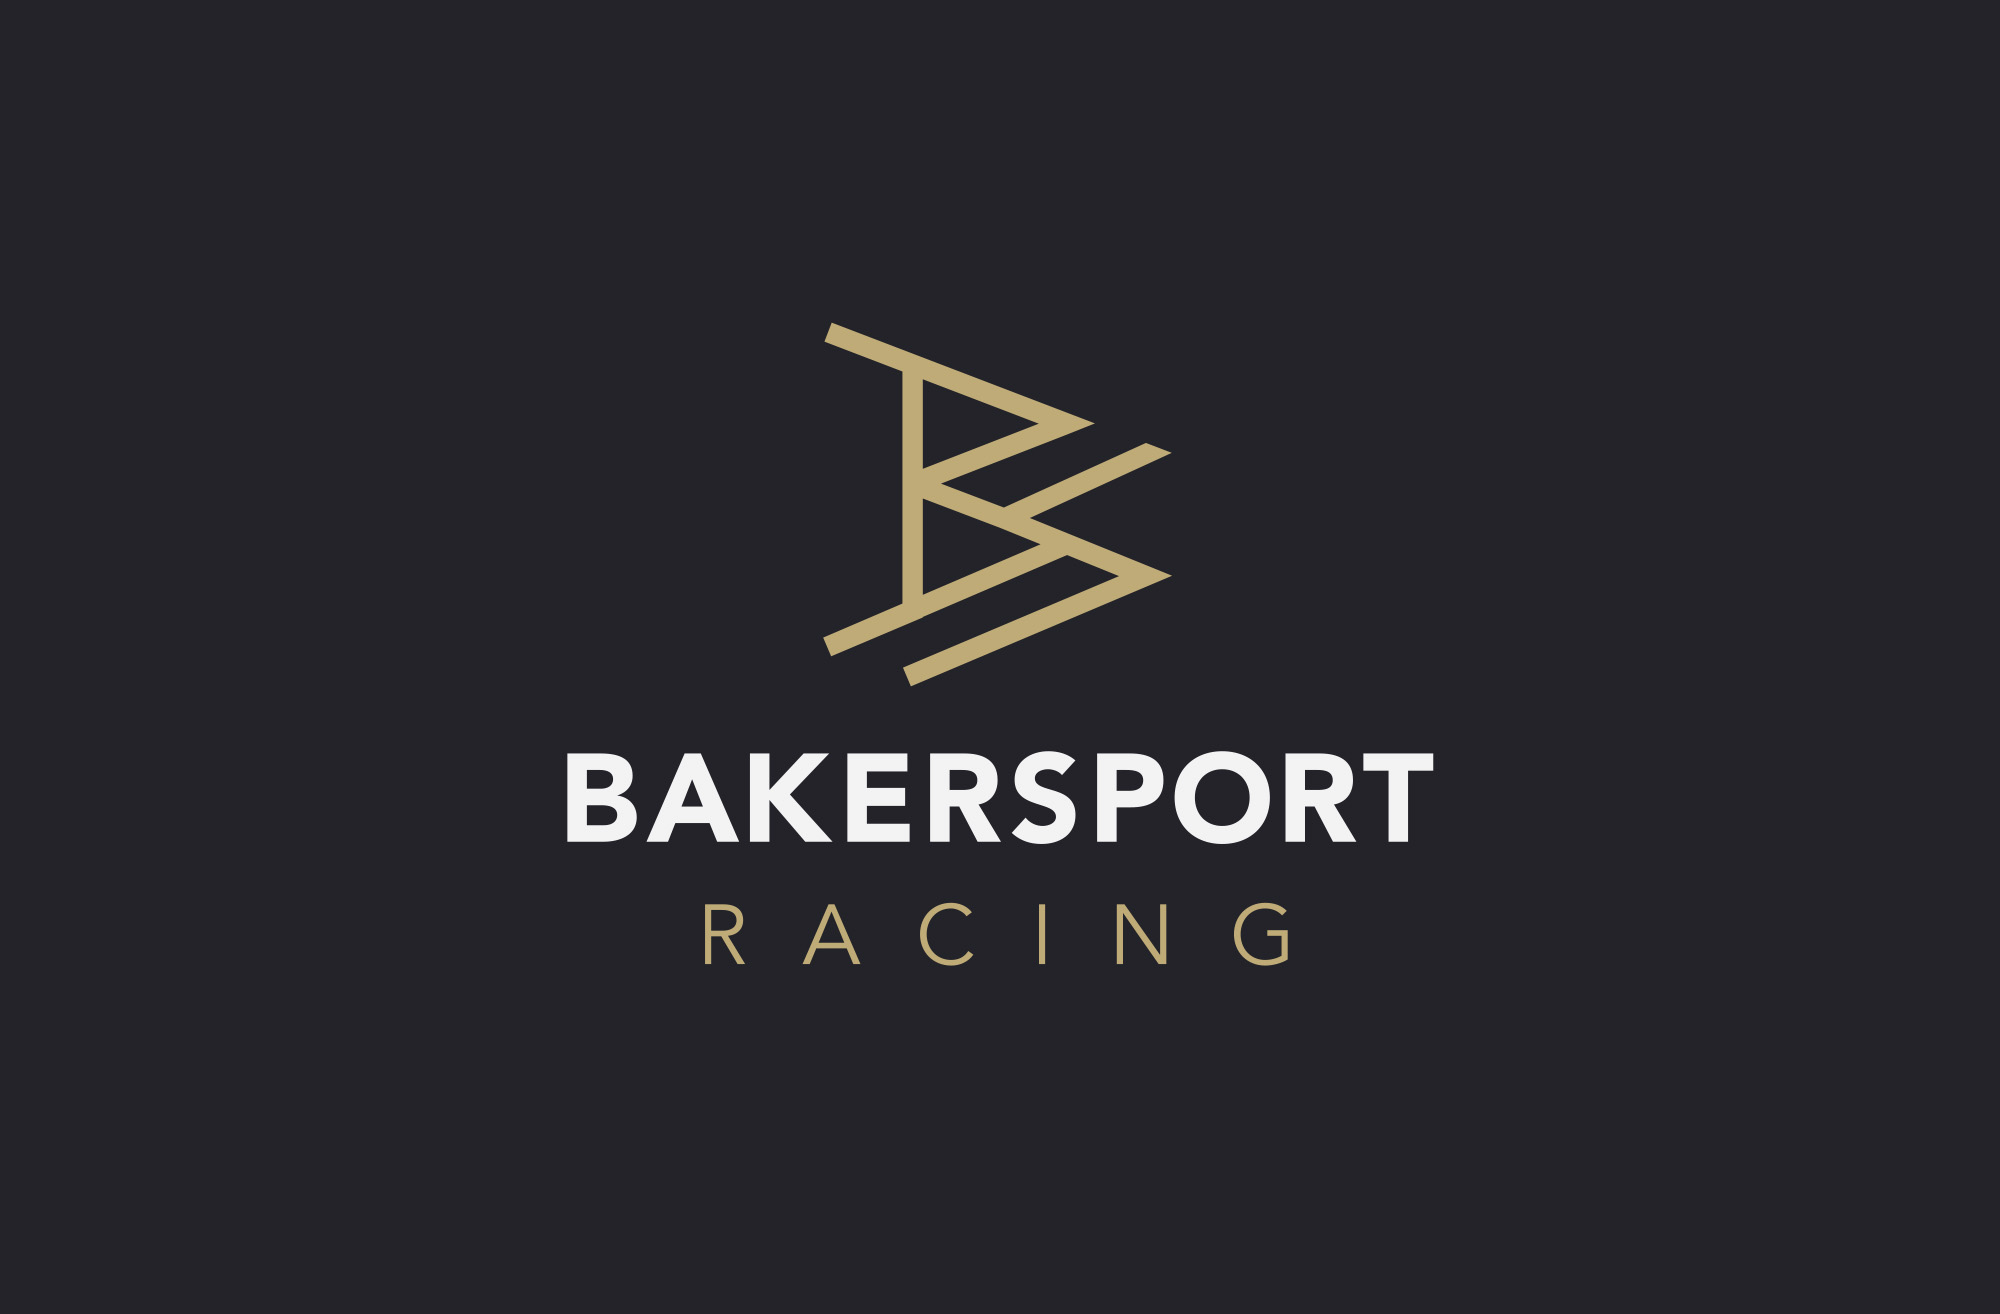 Bakersport Logo Design Project